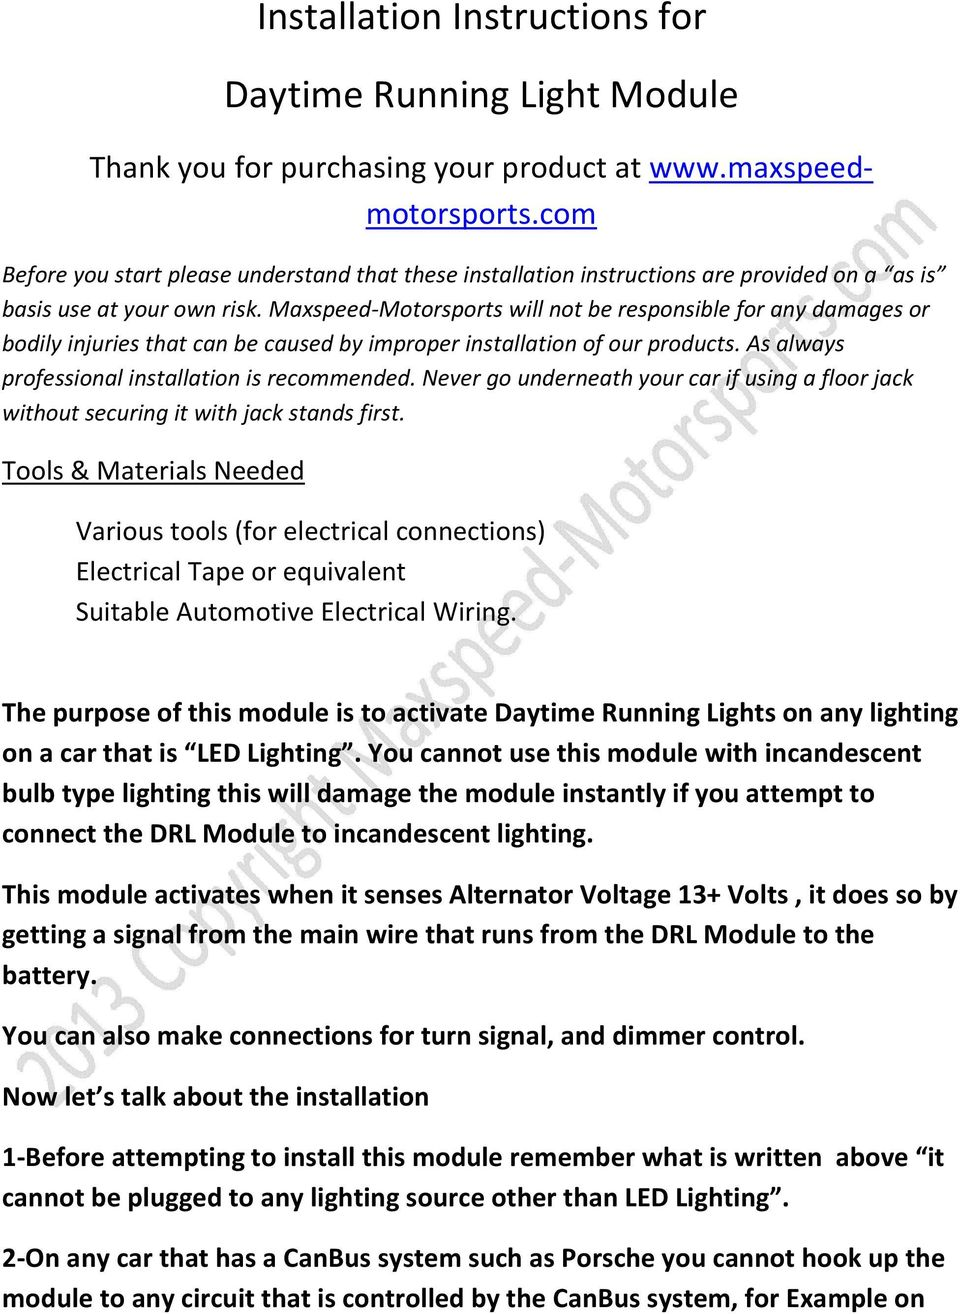 Installation Instructions For Daytime Running Light Module Pdf Led Circuit Series Runing Maxspeed Motorsports Will Not Be Responsible Any Damages Or Bodily Injuries That Can